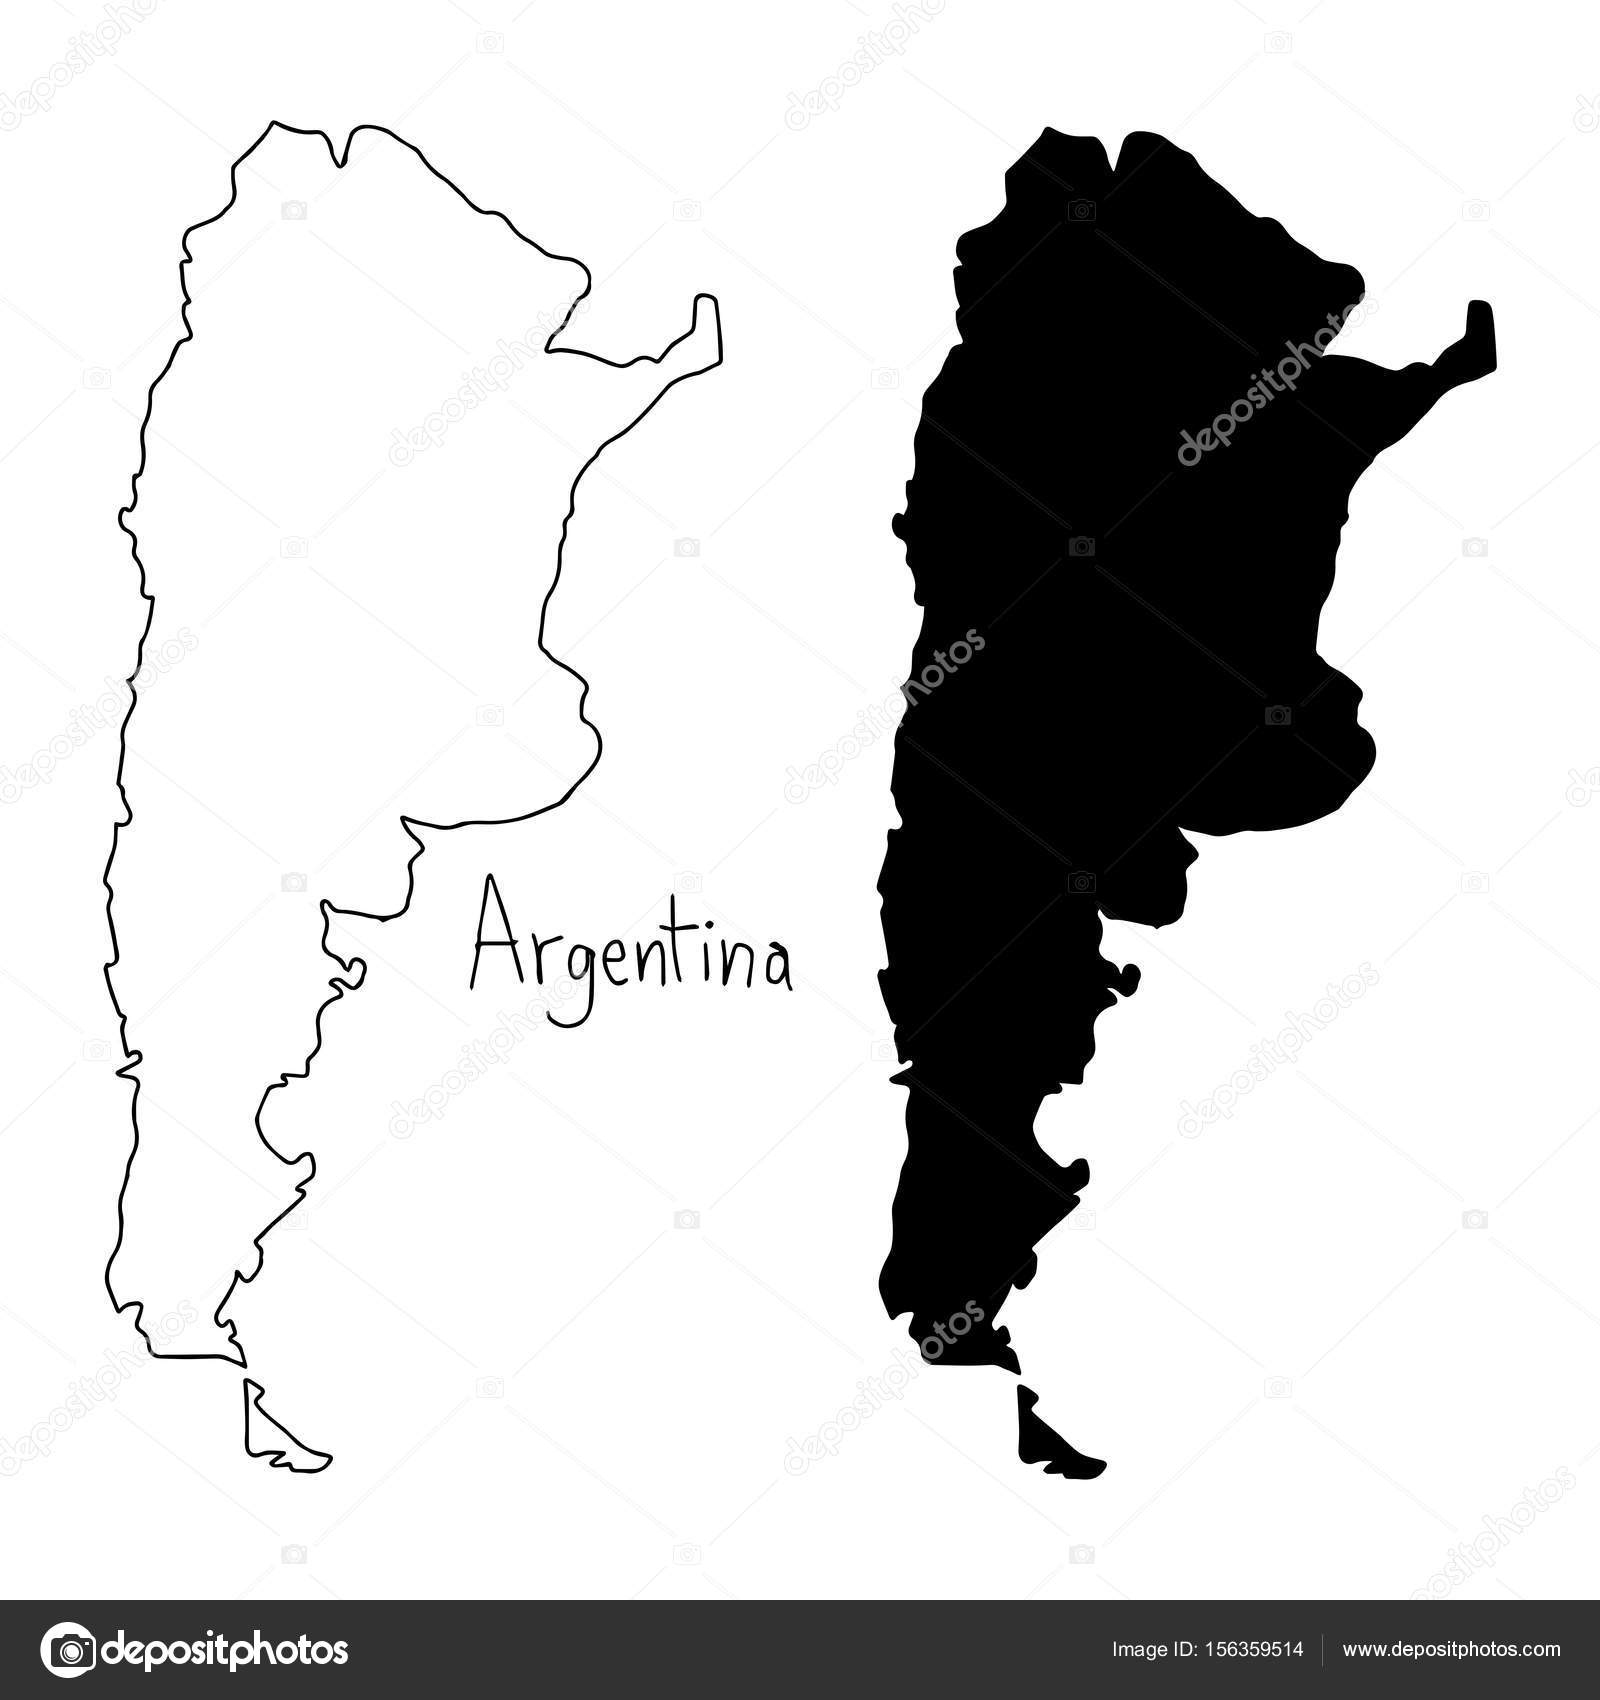 Outline And Silhouette Map Of Argentina Vector Illustration Hand - Argentina map black and white